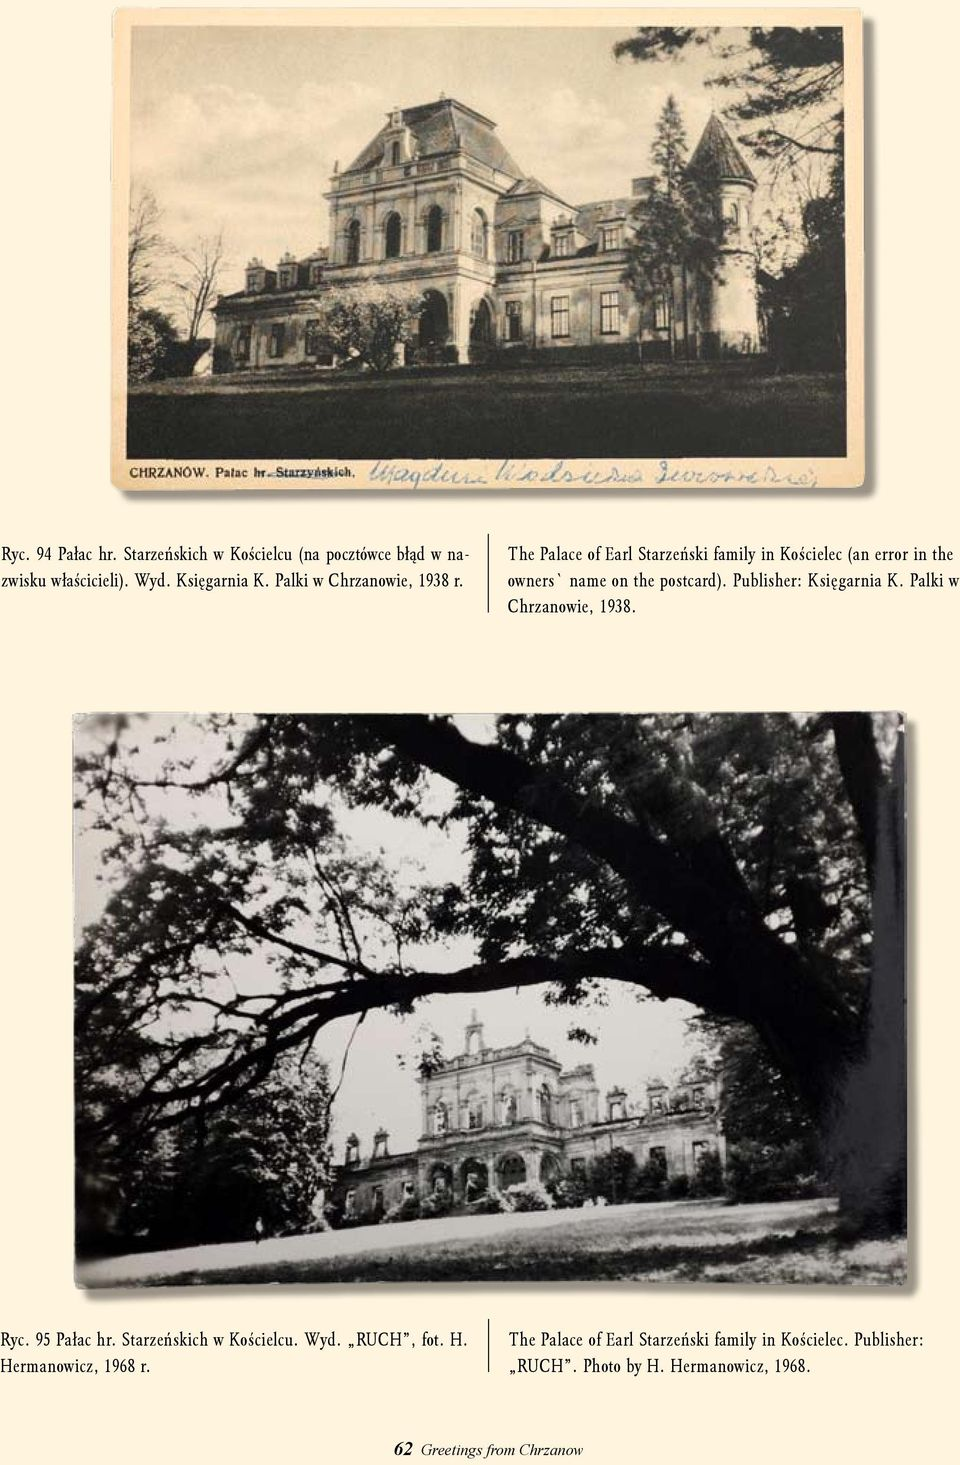 The Palace of Earl Starzeński family in Kościelec (an error in the owners` name on the postcard). Publisher: Księgarnia K.